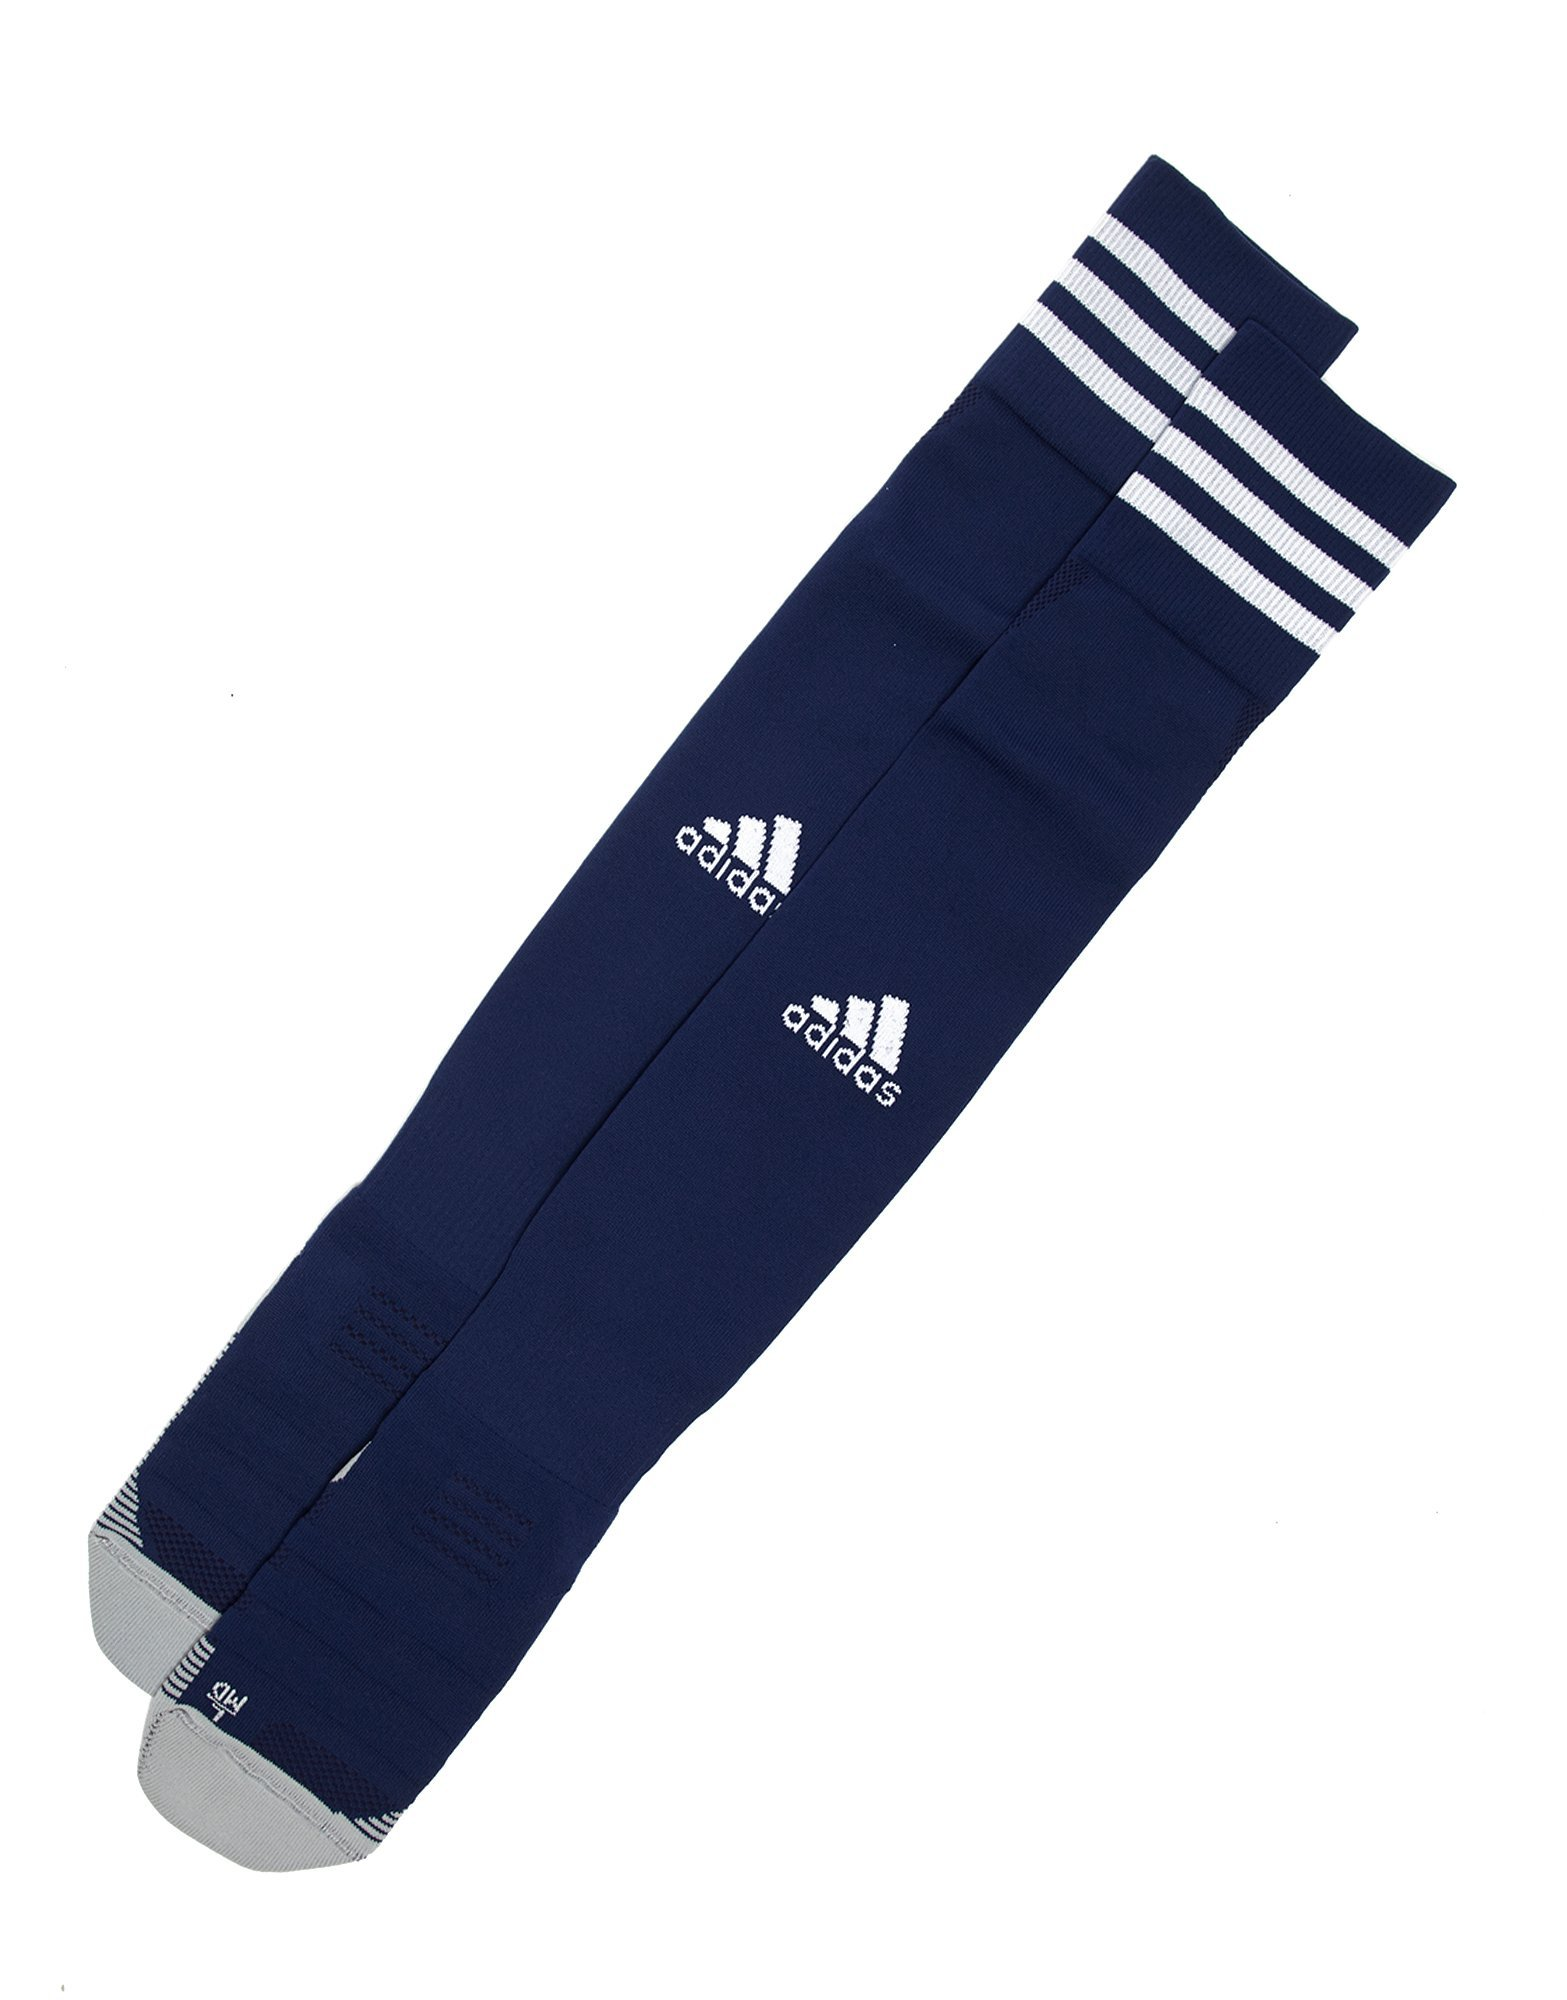 adidas Scotland FA 2018/19 Away Socks